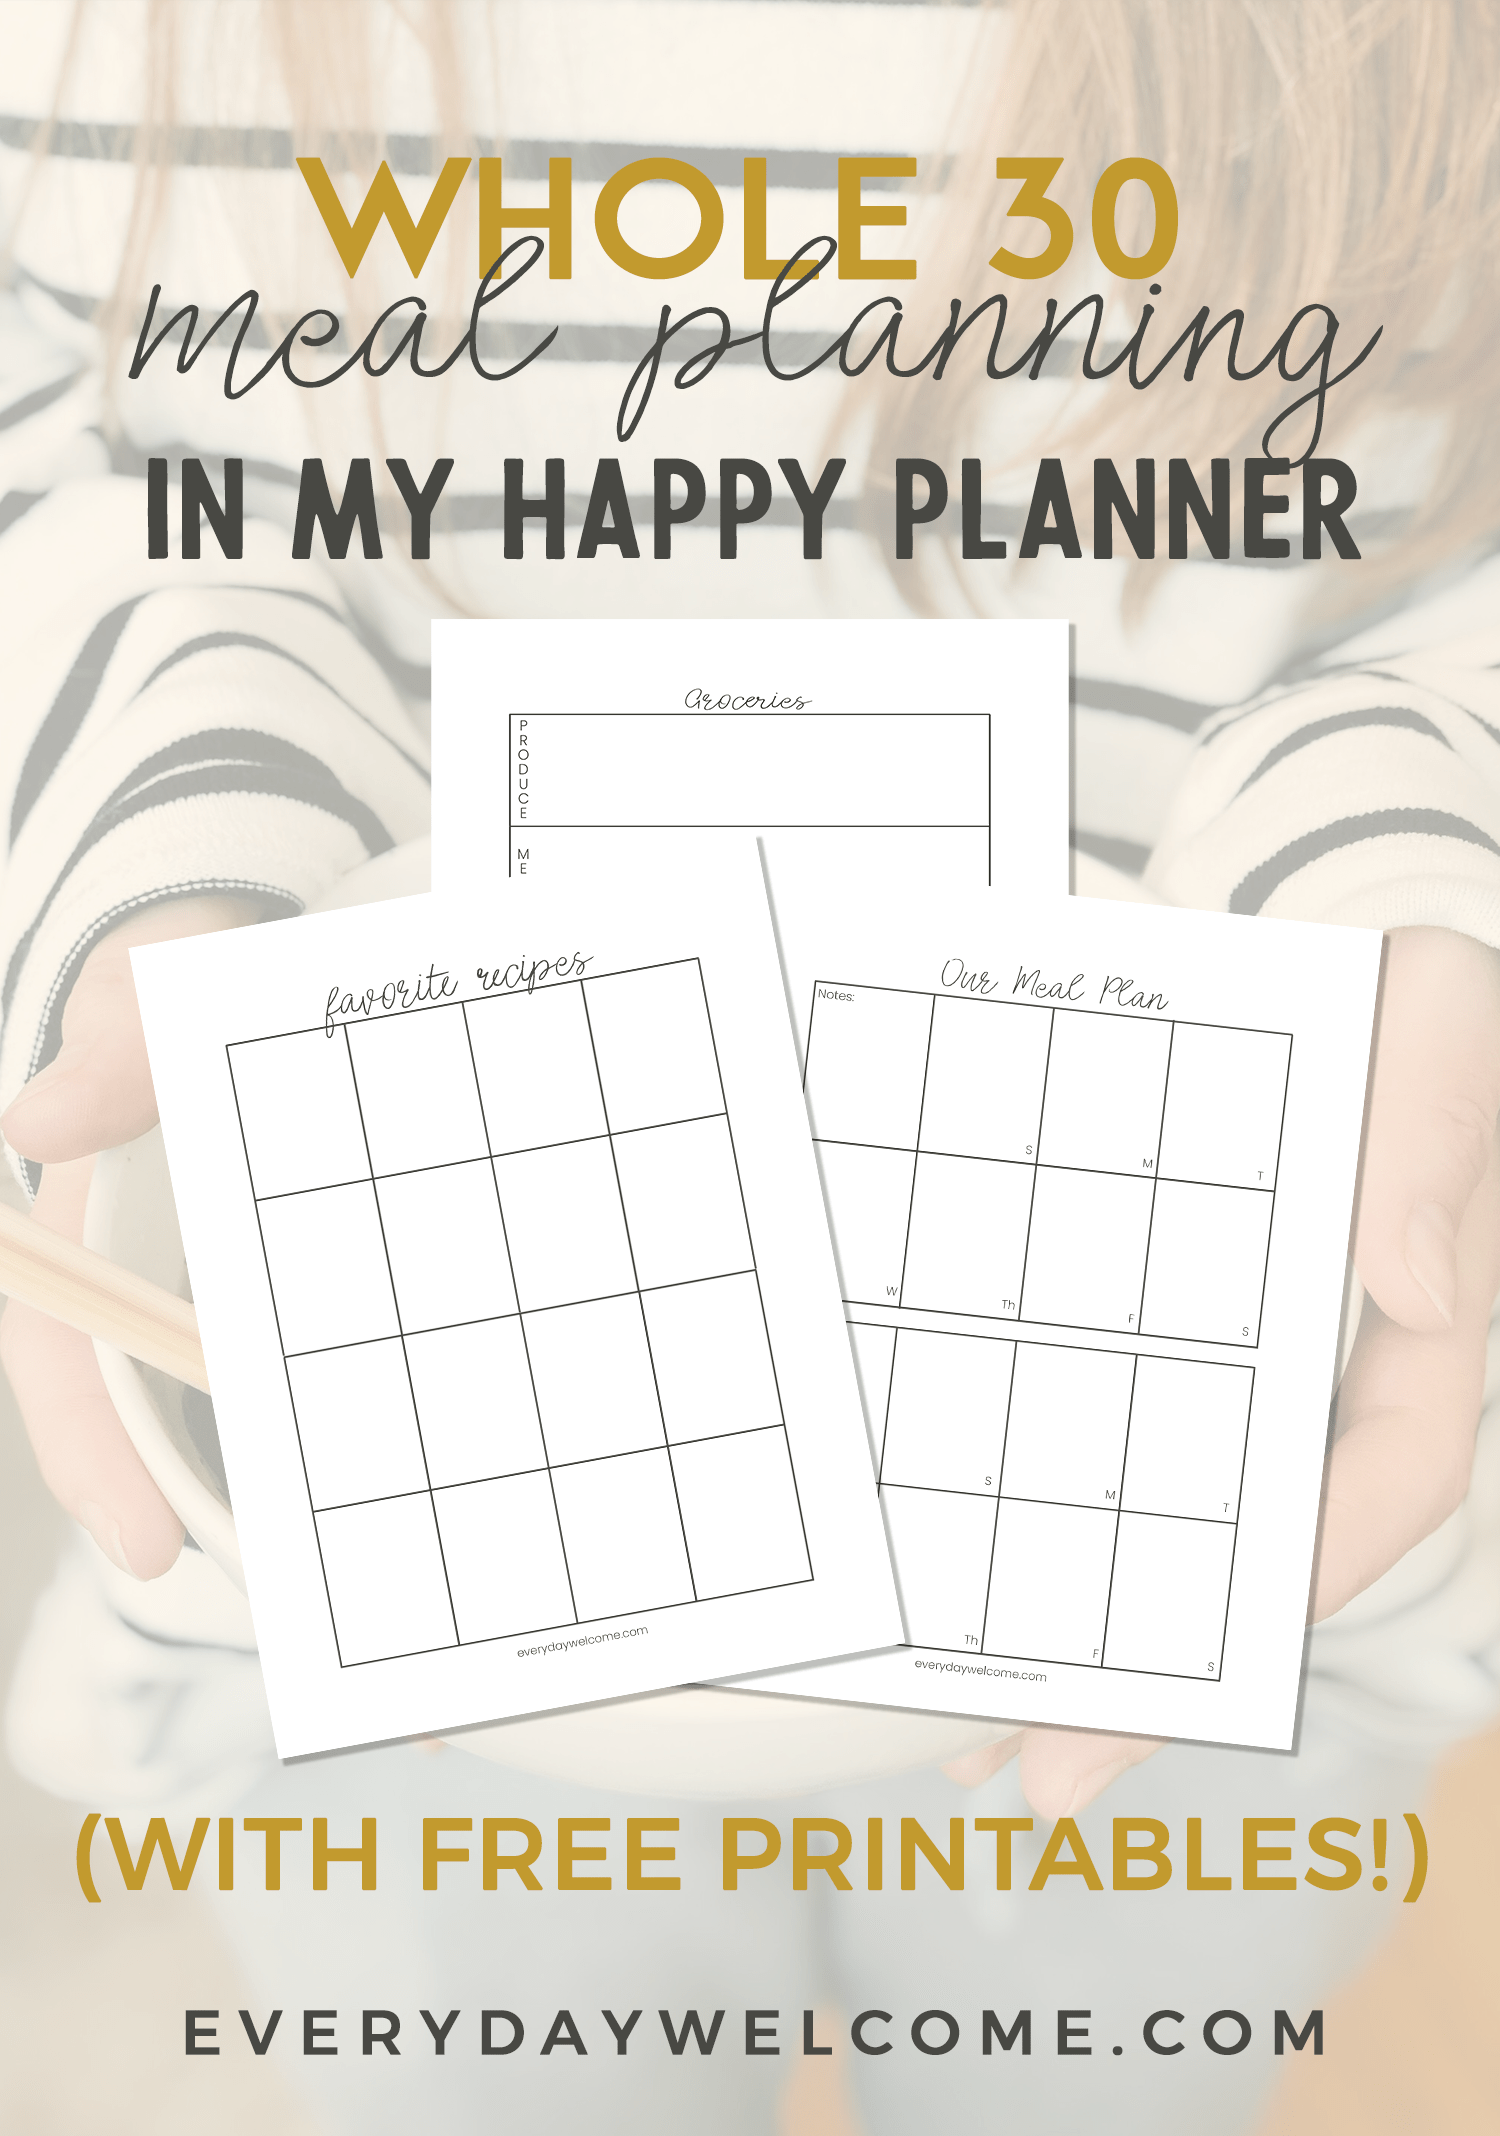 This is an image of Happy Planner Recipe Printable with template